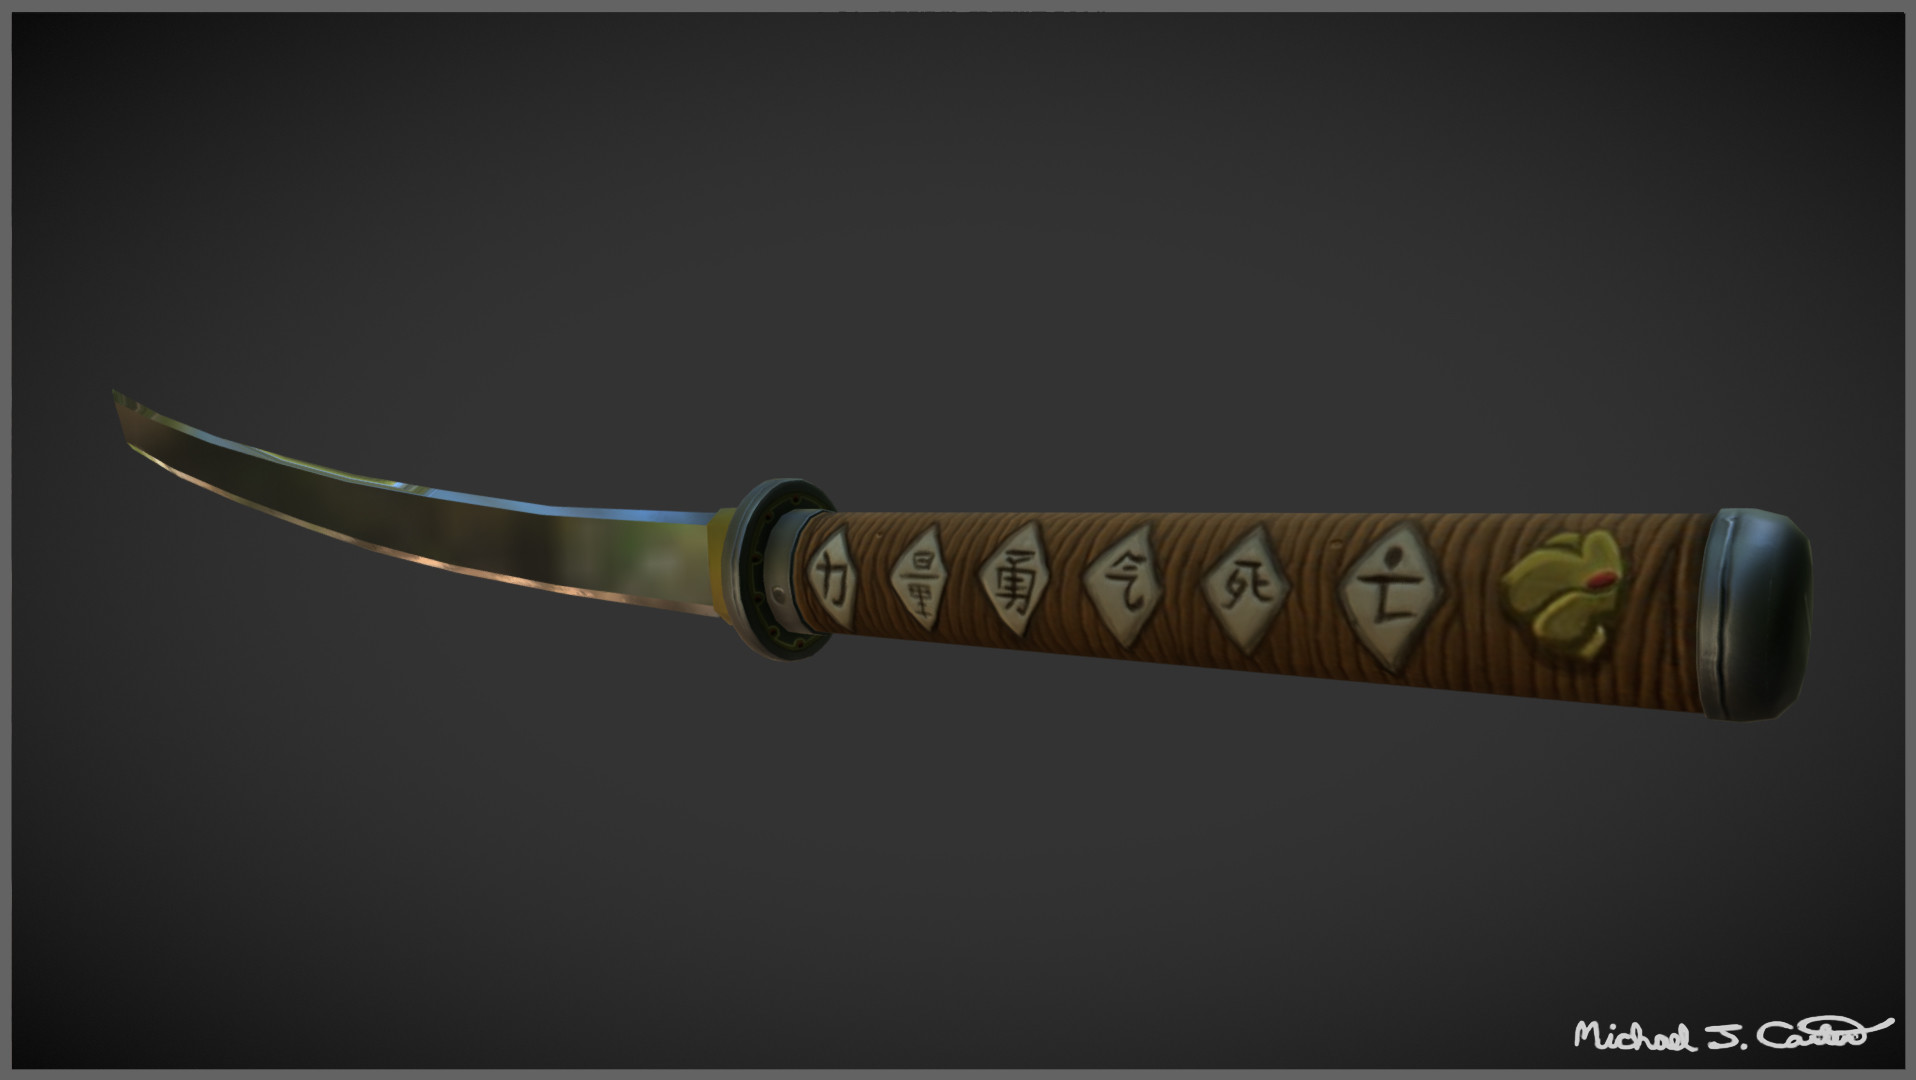 Michael jake carter mcarter katana turnaround back view image